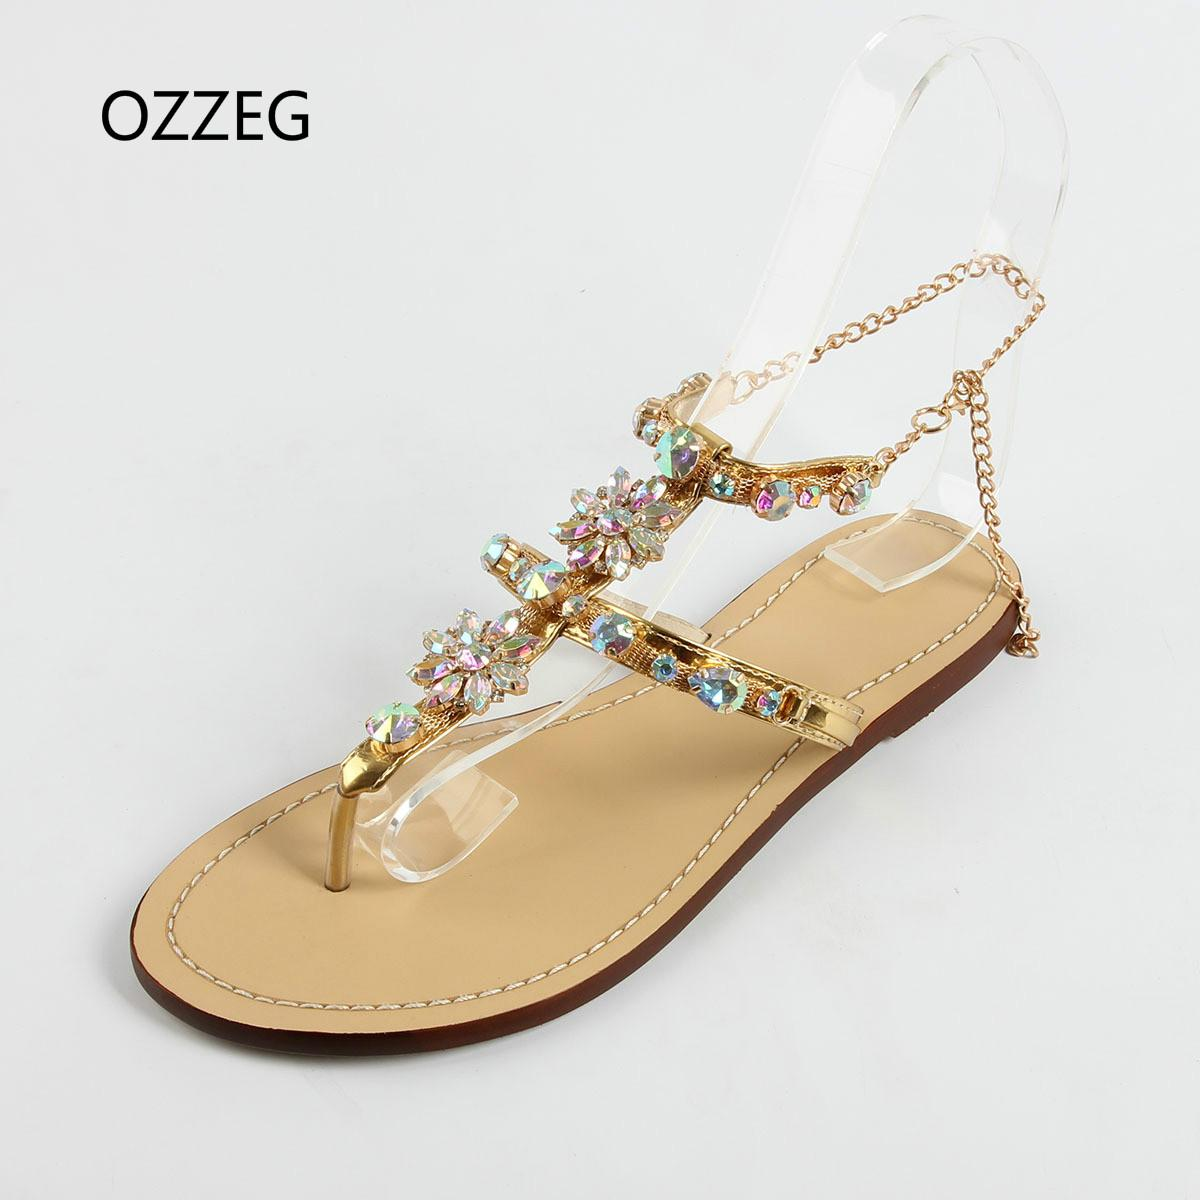 ca4a830dfb83 Woman Sandals Women Shoes Fashion Rhinestones Chains Thong Gladiator Flat  Sandals Crystal Chaussure Sandalias Mujer Plus Size 47 Platform Shoes Prom  Shoes ...